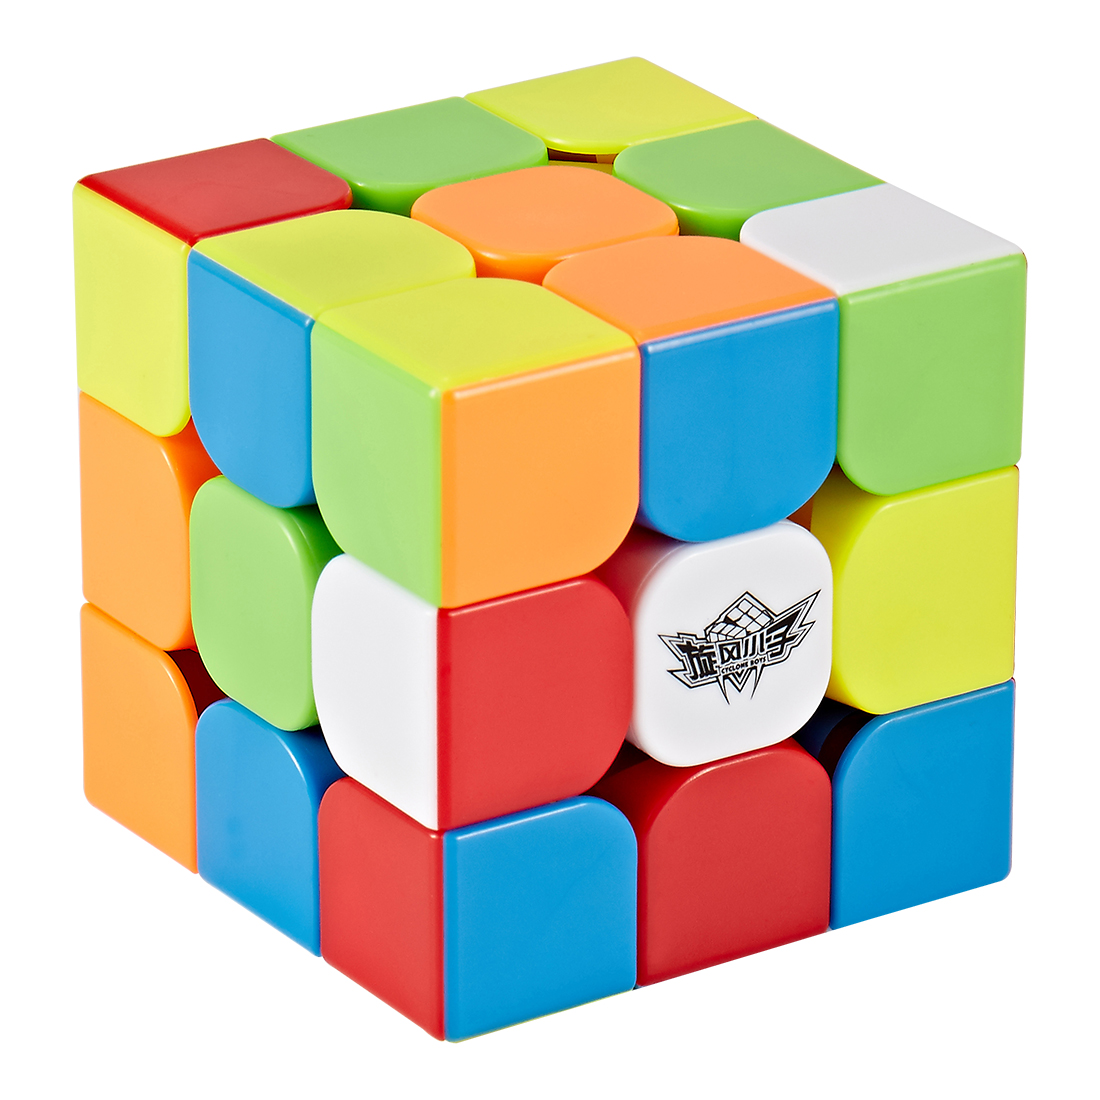 Cyclone Boys Feijue 3x3 Magnetic Version Magic Cube Stickerless Speed Cube Puzzle Toy - Colorful qiyi megaminx magic cube stickerless speed professional 12 sides puzzle cubo magico educational toys for children megamind